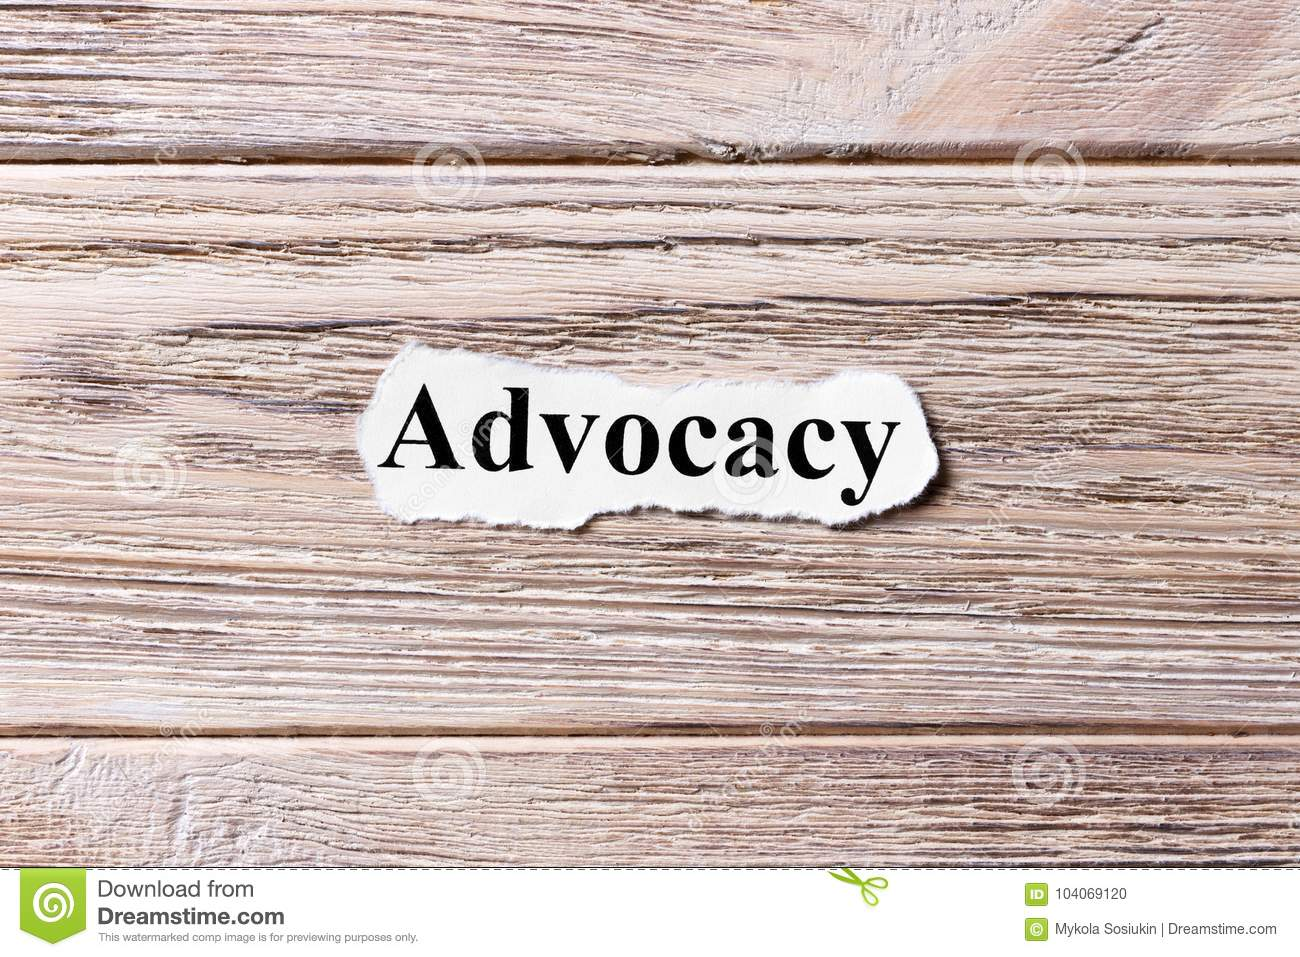 Advocacy of the word on paper. concept. Words of advocacy on a wooden background